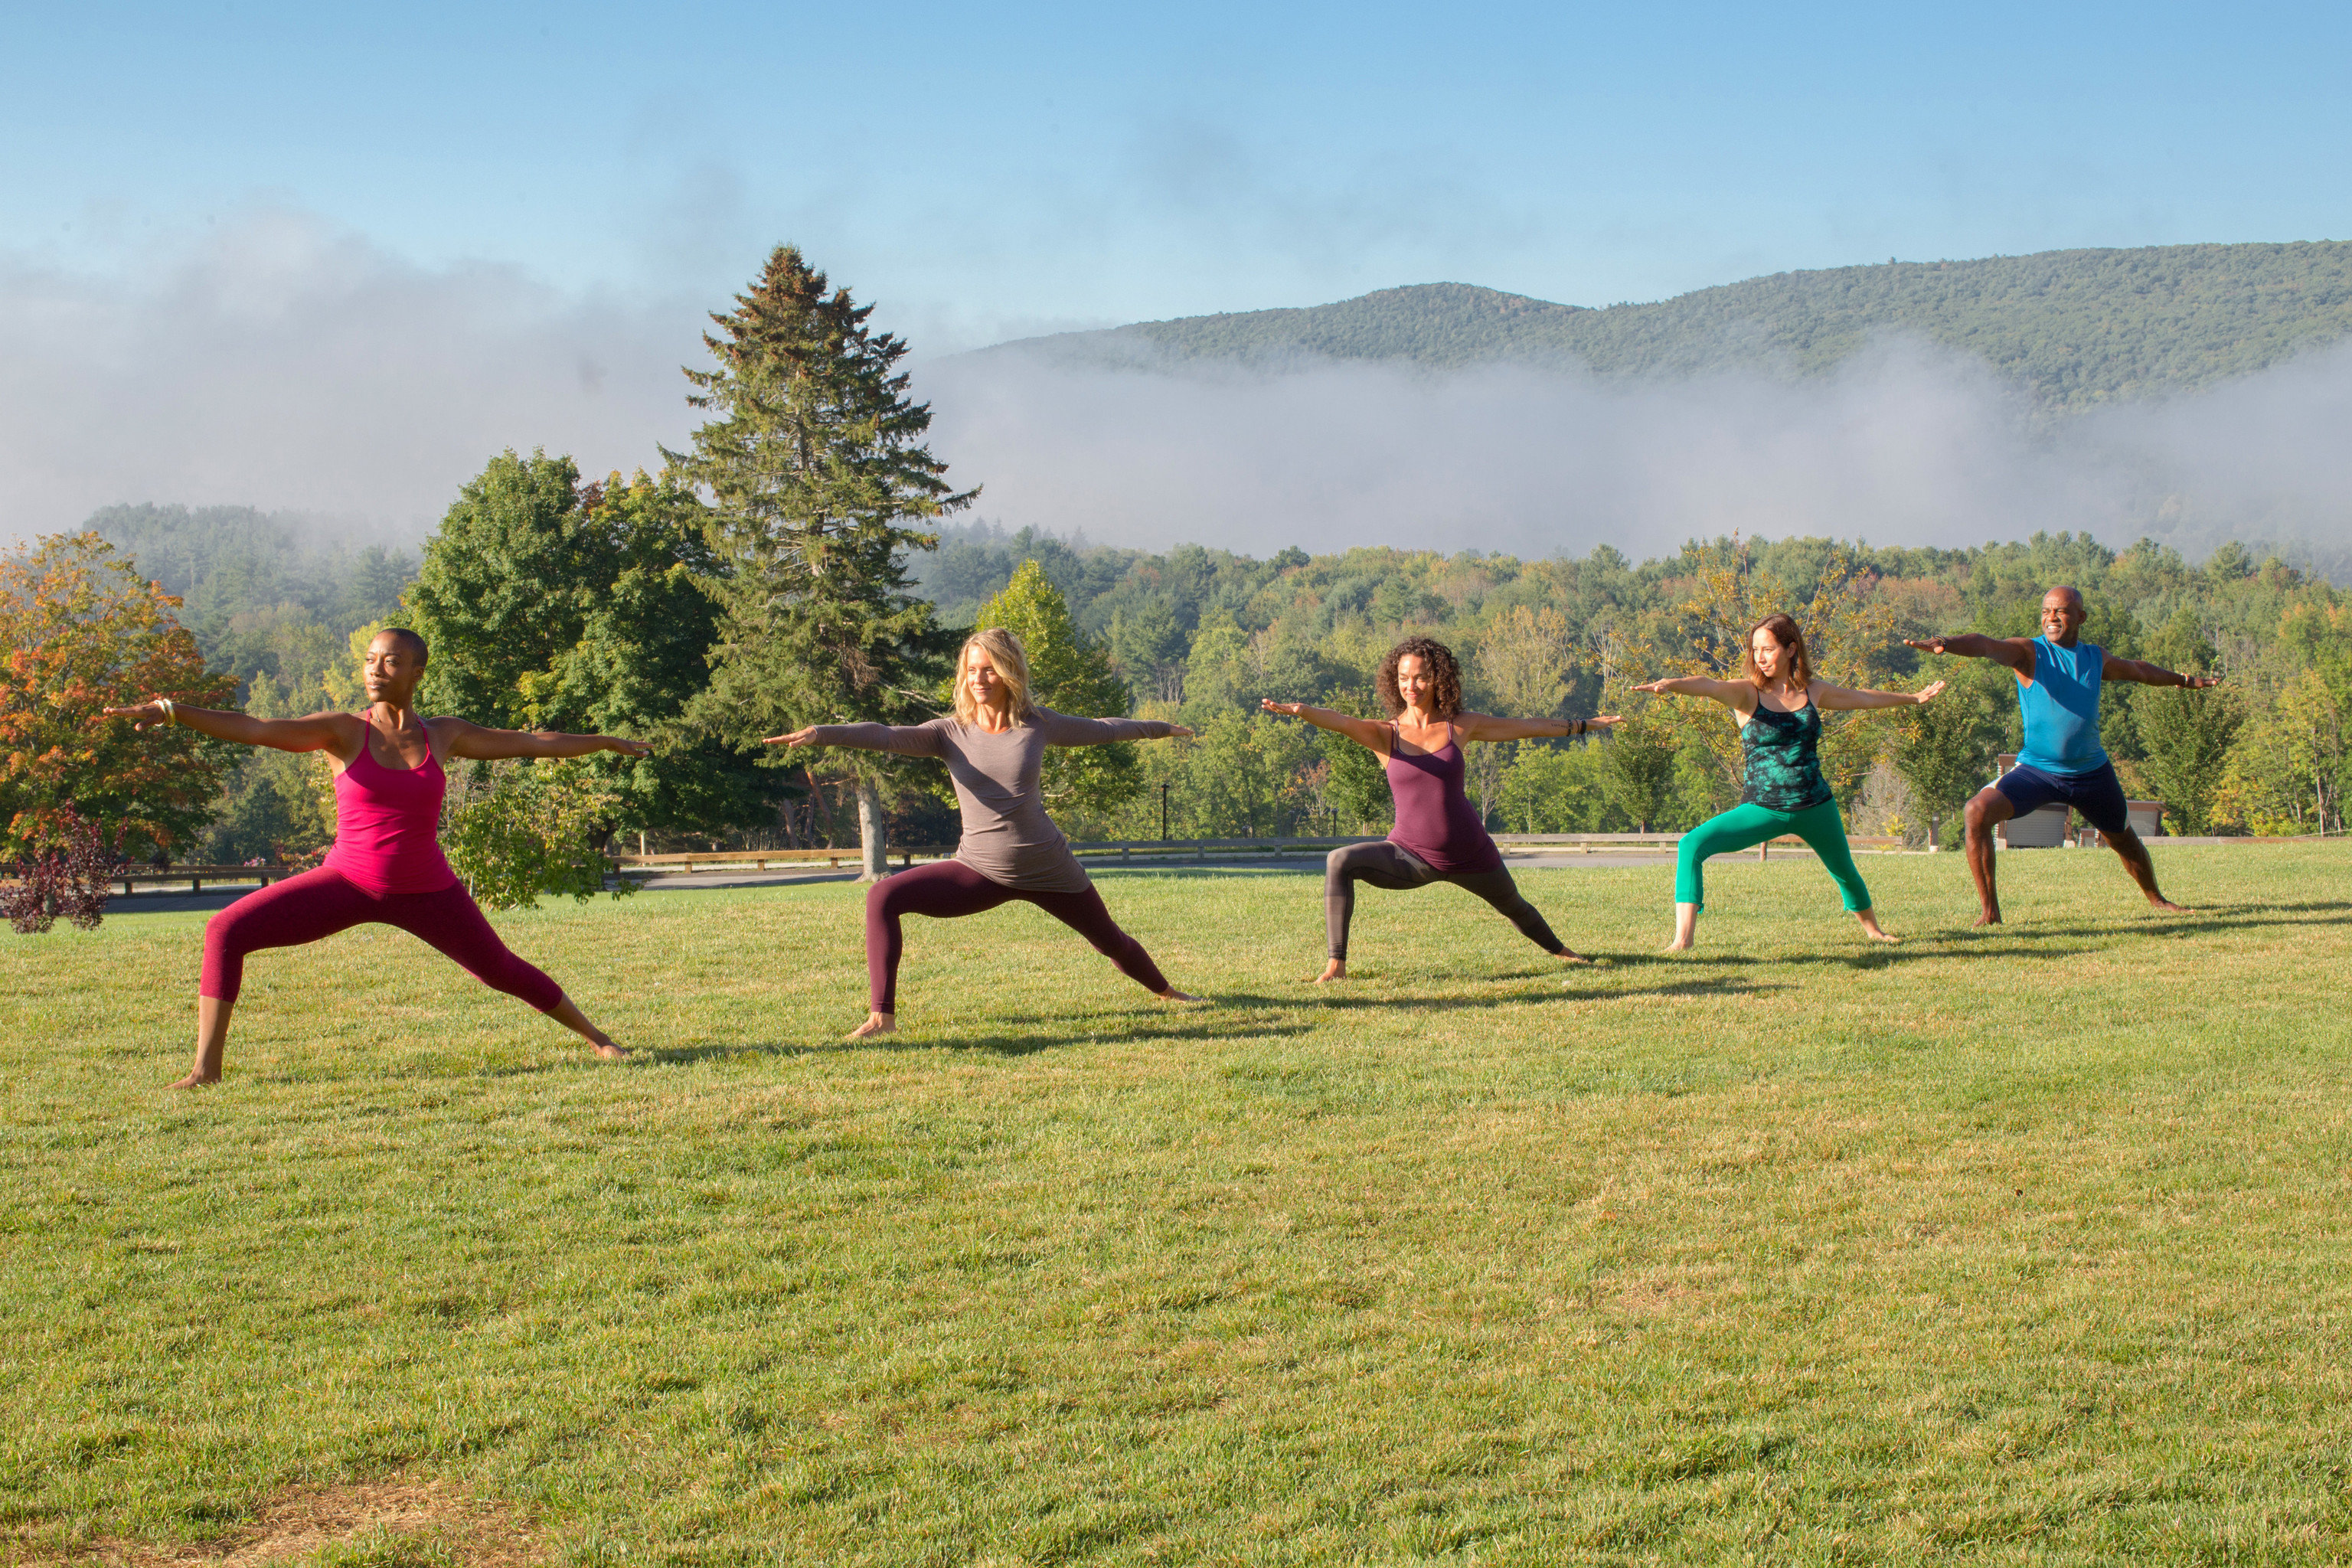 Health + Wellness Meditation Retreats Spa Retreats Trip Ideas Yoga Retreats grass sky outdoor human action field sports physical fitness Sport physical exercise